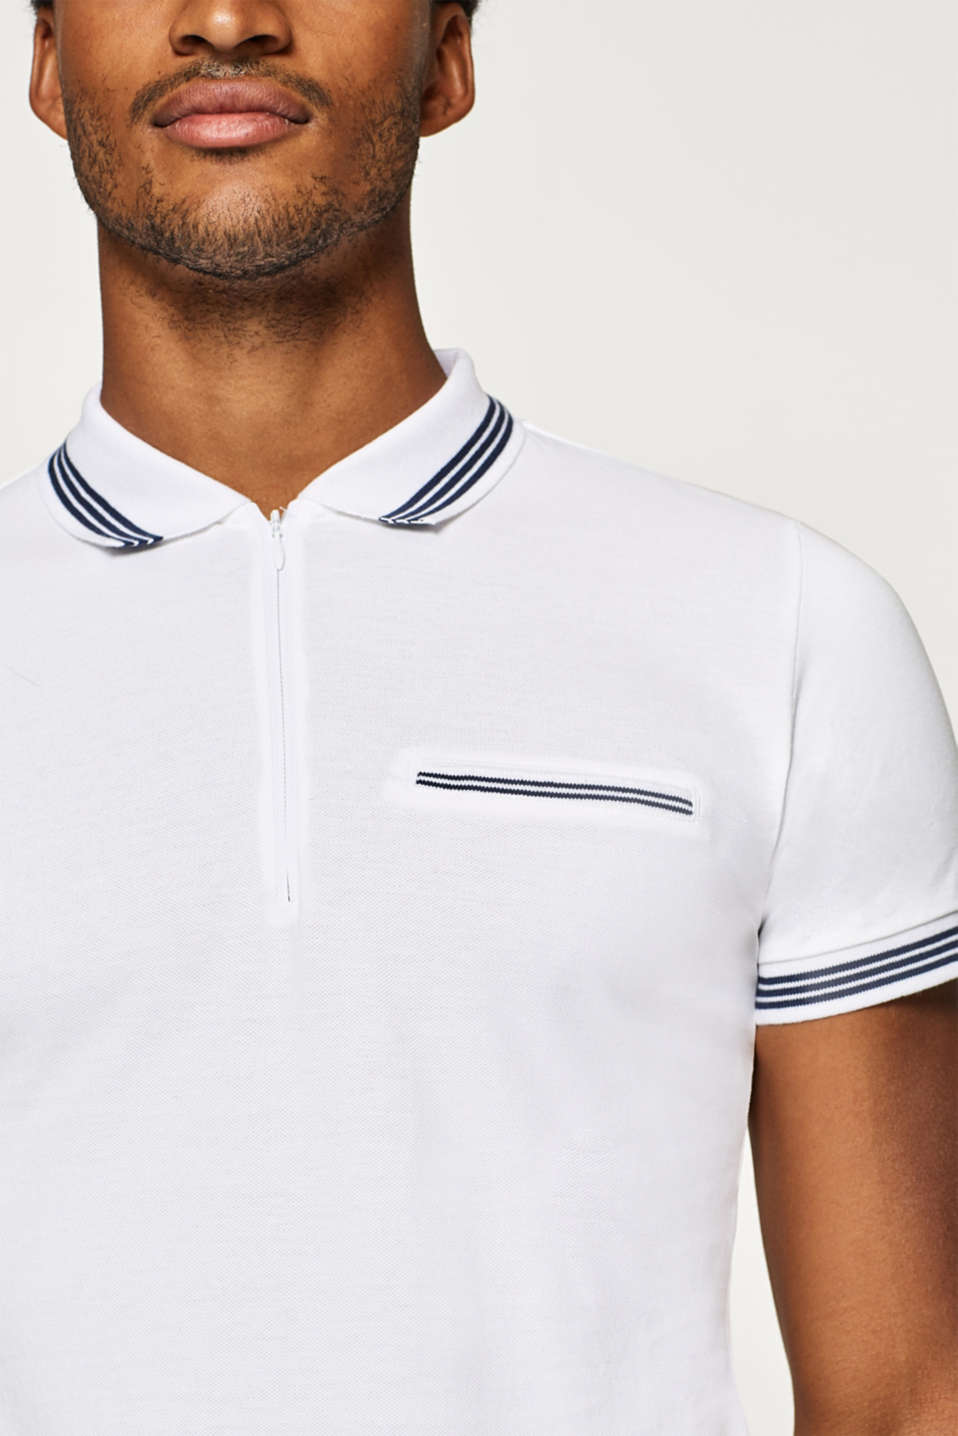 Piqué polo shirt with a zip, 100% cotton